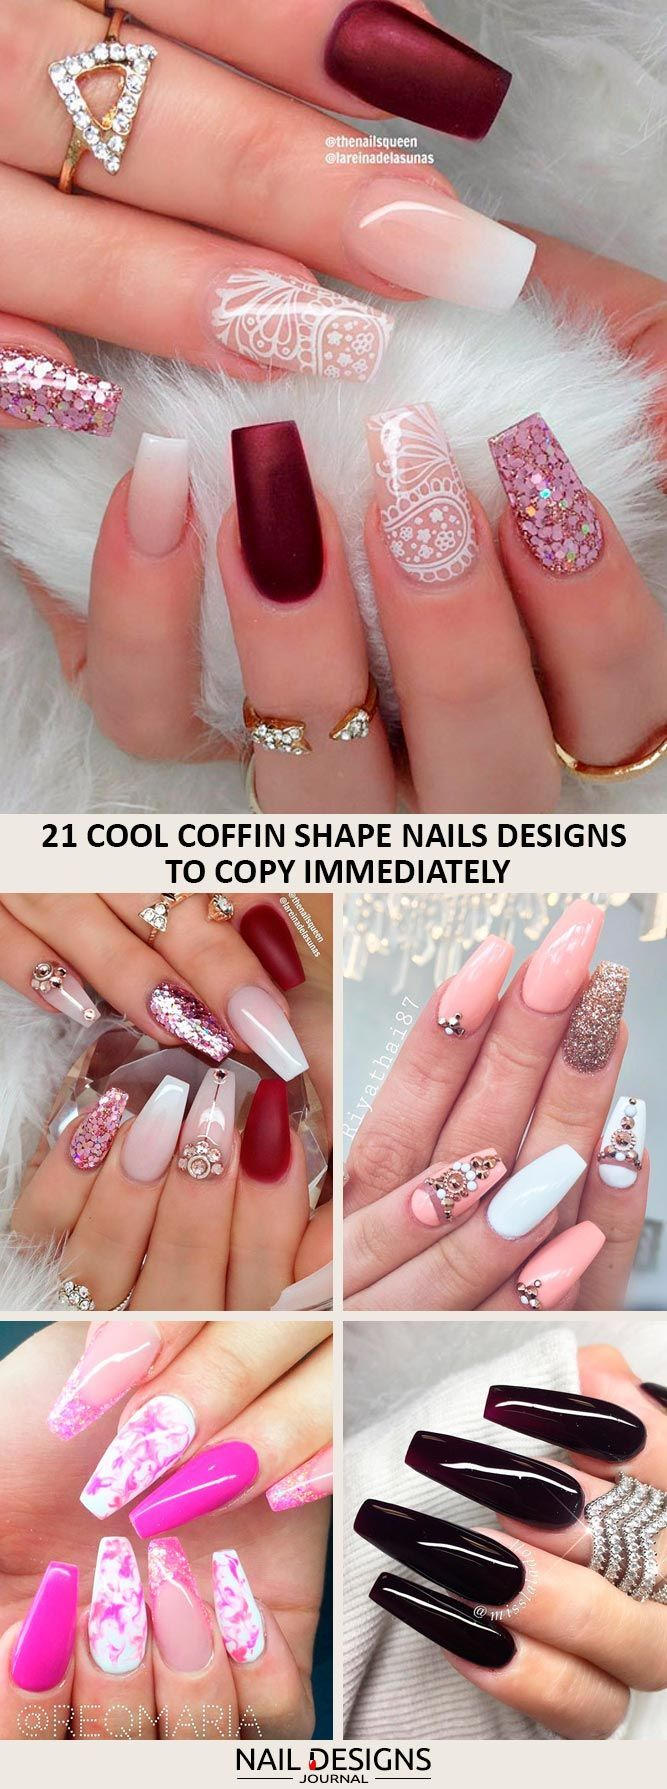 21 Chic White Acrylic Nails to Copy